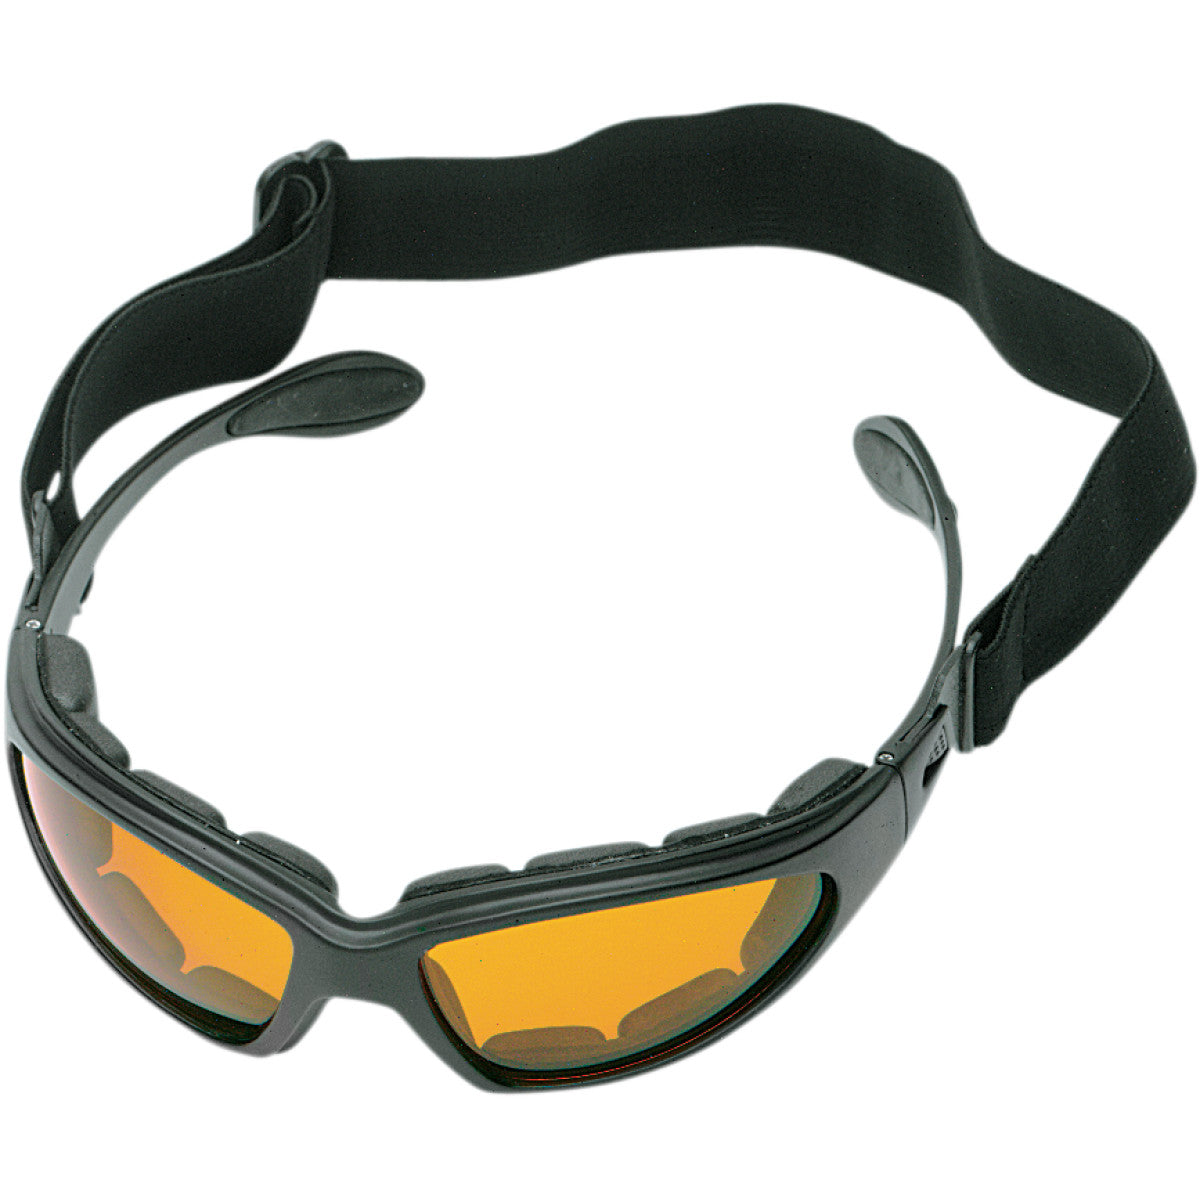 BOBSTER GXR SUNGLASSES/GOGGLES